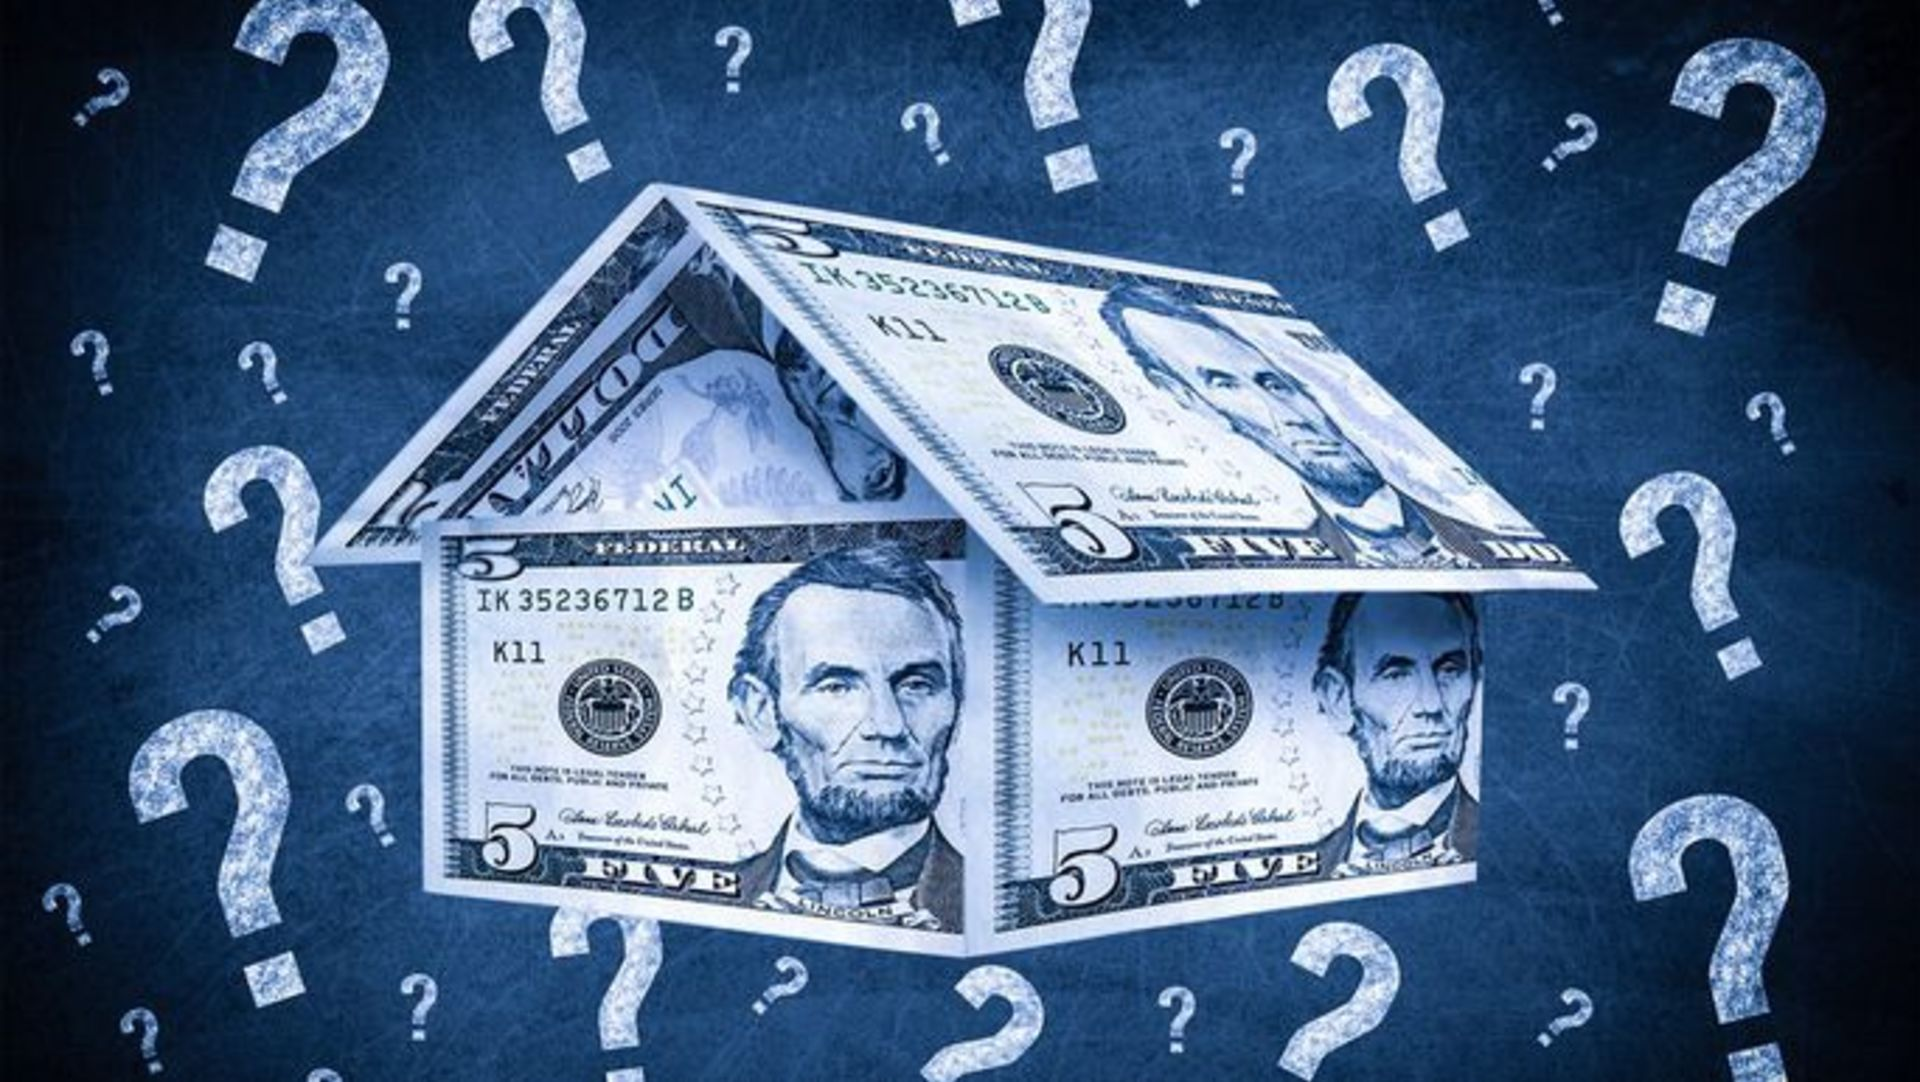 Mortgages Are Getting Riskier Again: Should We Be Worried?